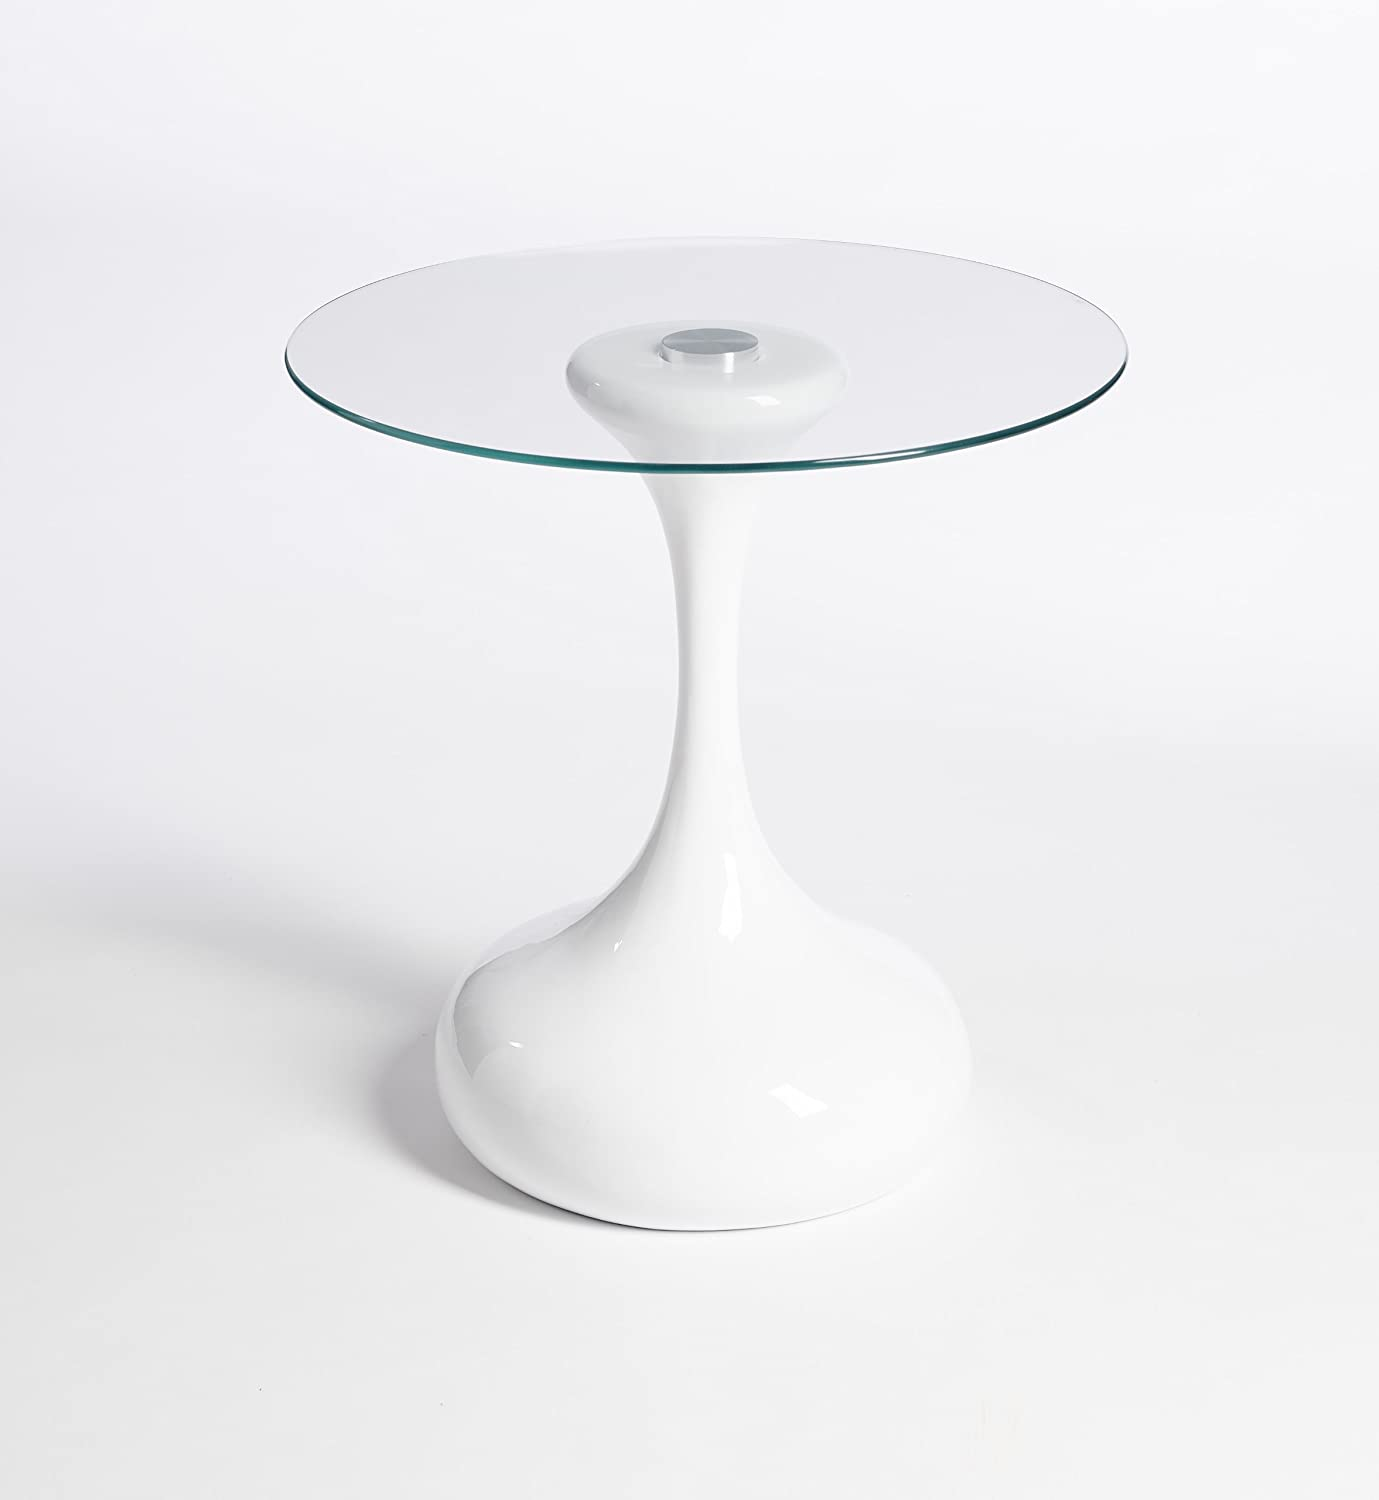 Side table end table lamp table round white gloss modern designer hour glass round side table end table lamp table white aloadofball Choice Image